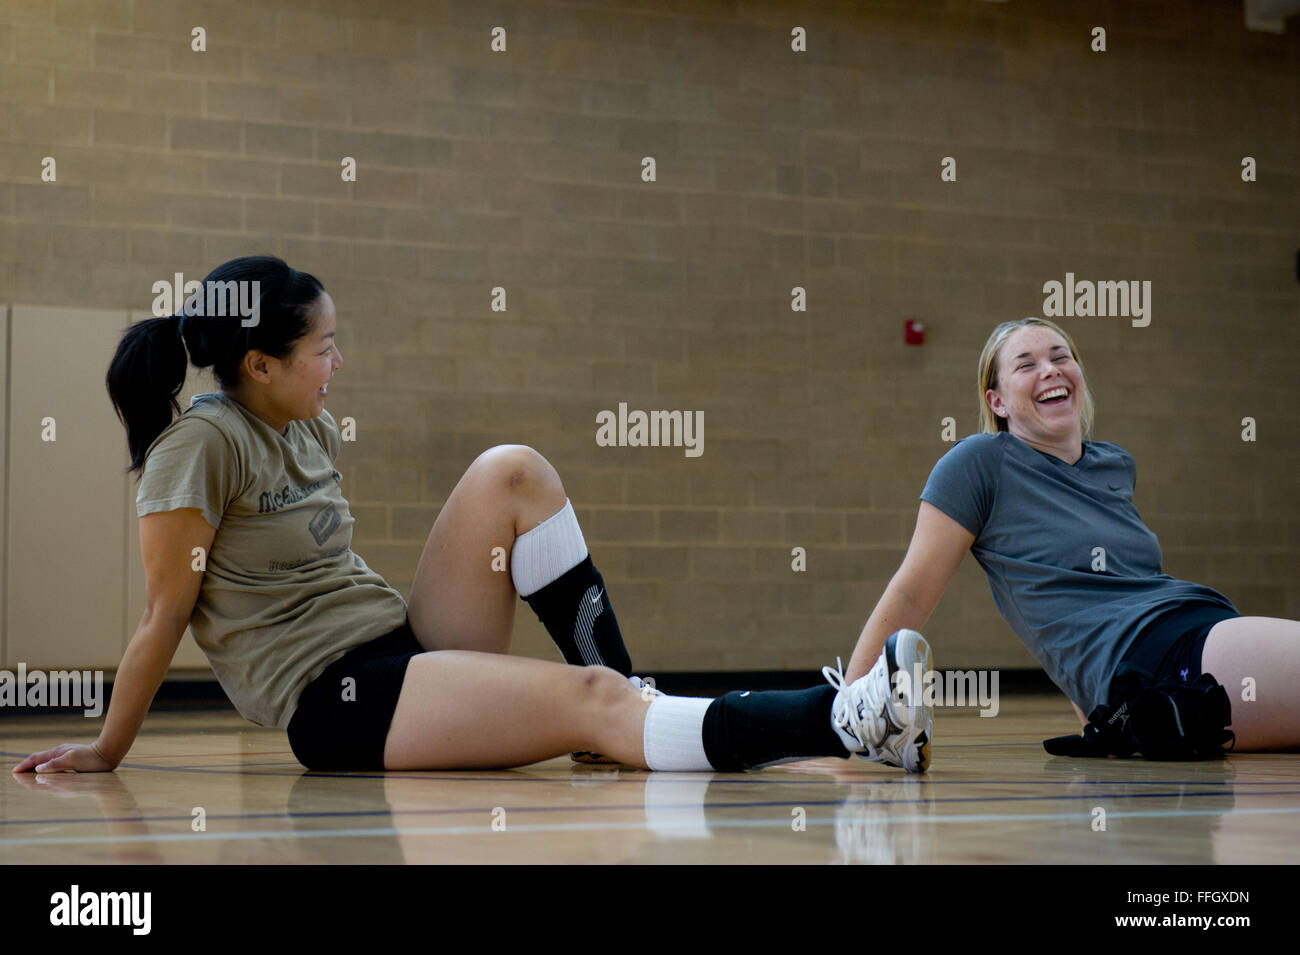 Capt. Sally To (left) and Airman 1st Class Kristina Englebert, talk and stretch after volleyball practice at Hill - Stock Image